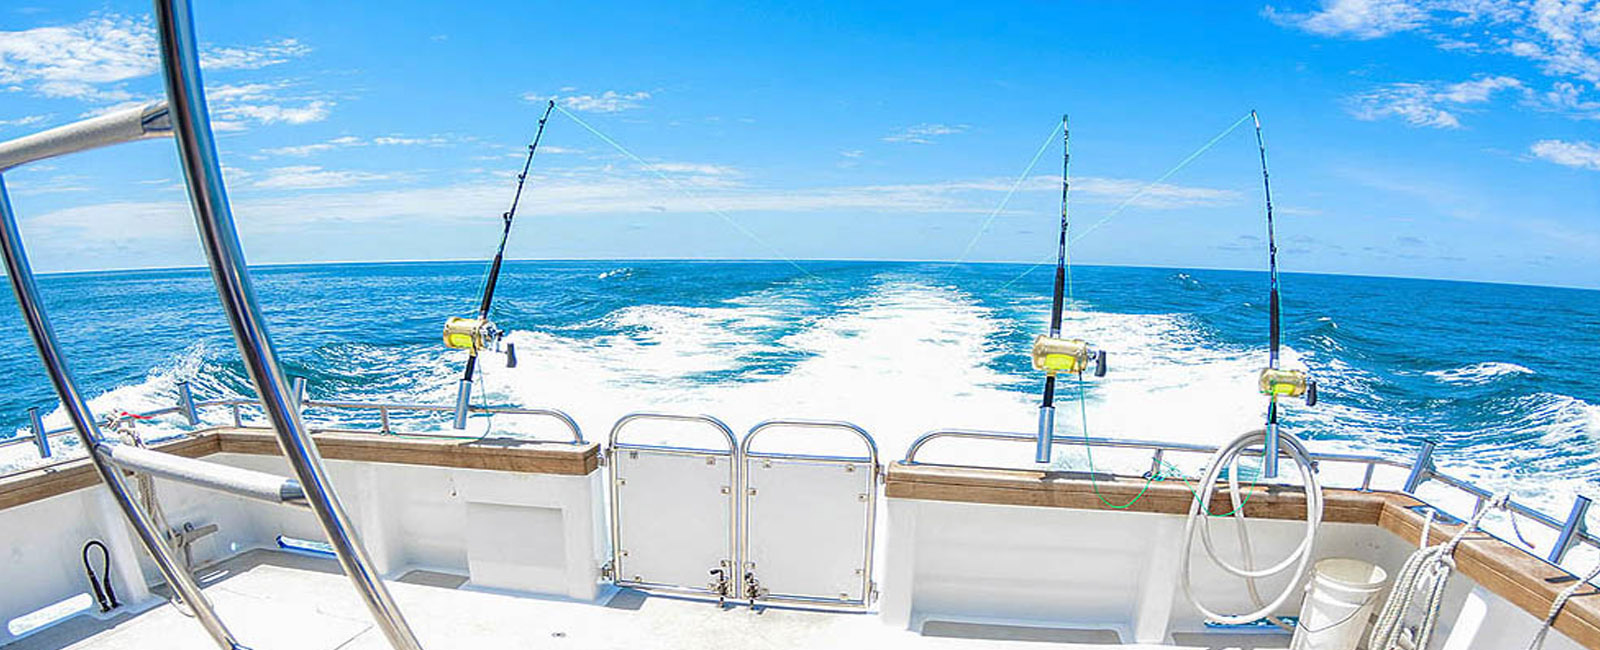 Glenalan-fishing-rods-Abrolhos-Islands-fishing-trips-charters-1